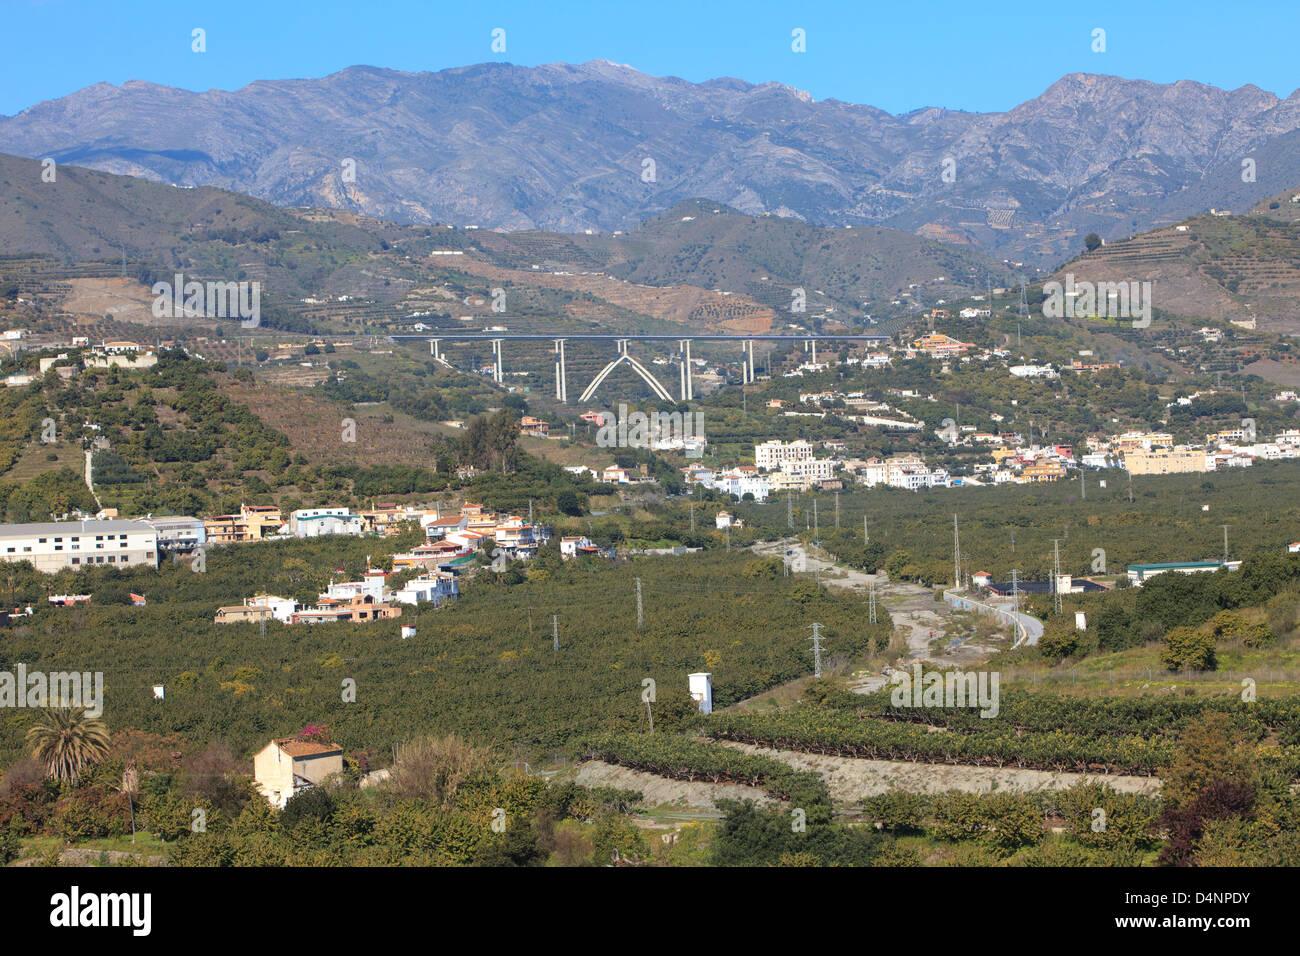 A valley with fruit trees in Almuñécar, Spain - Stock Image